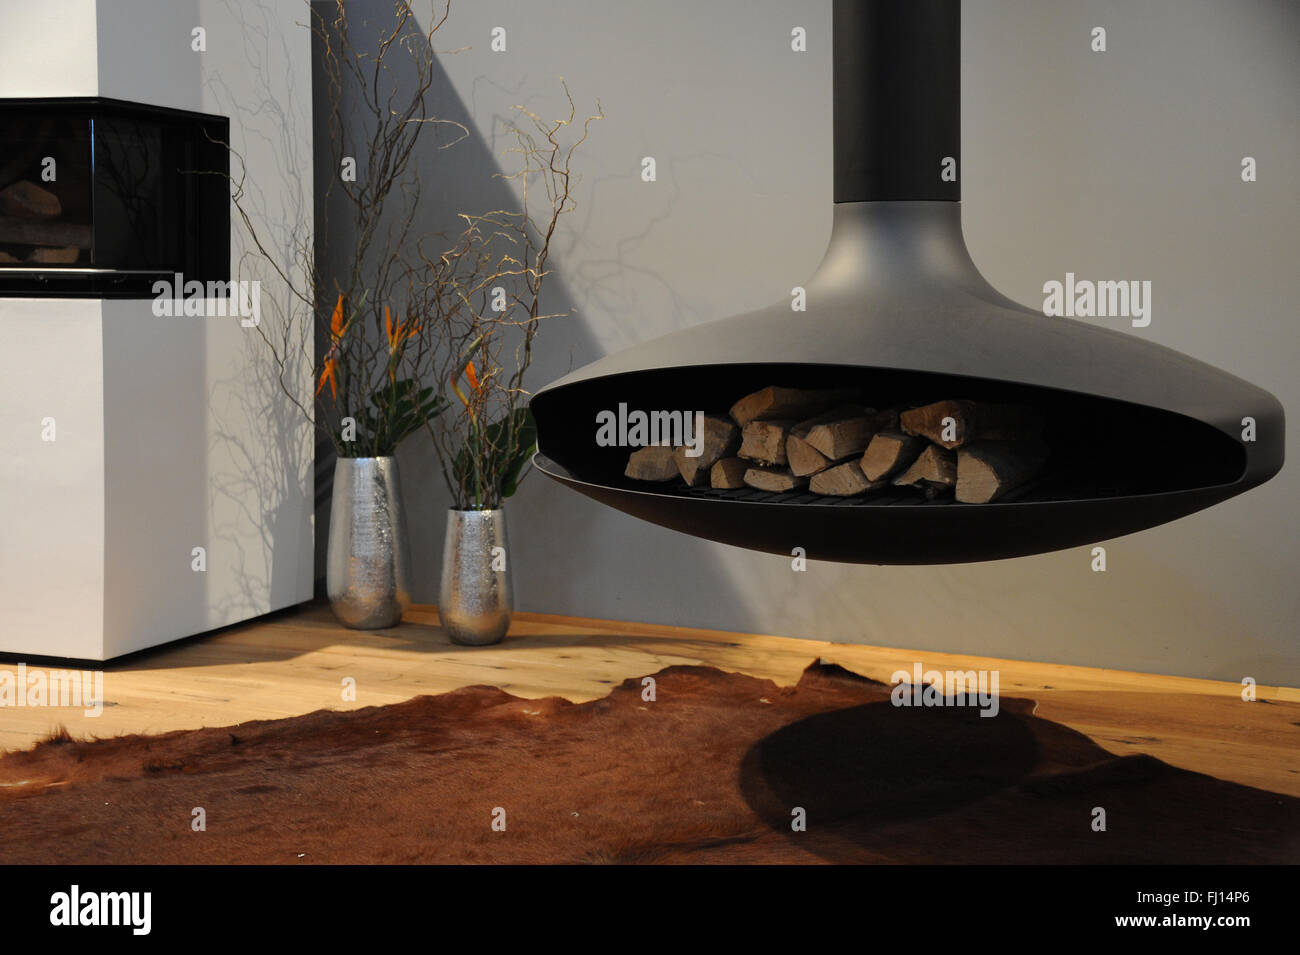 Munich, Germany. 26th Feb, 2016. A fireplace can be seen at the International Handcraft Fair IHM in Munich, Germany, Stock Photo